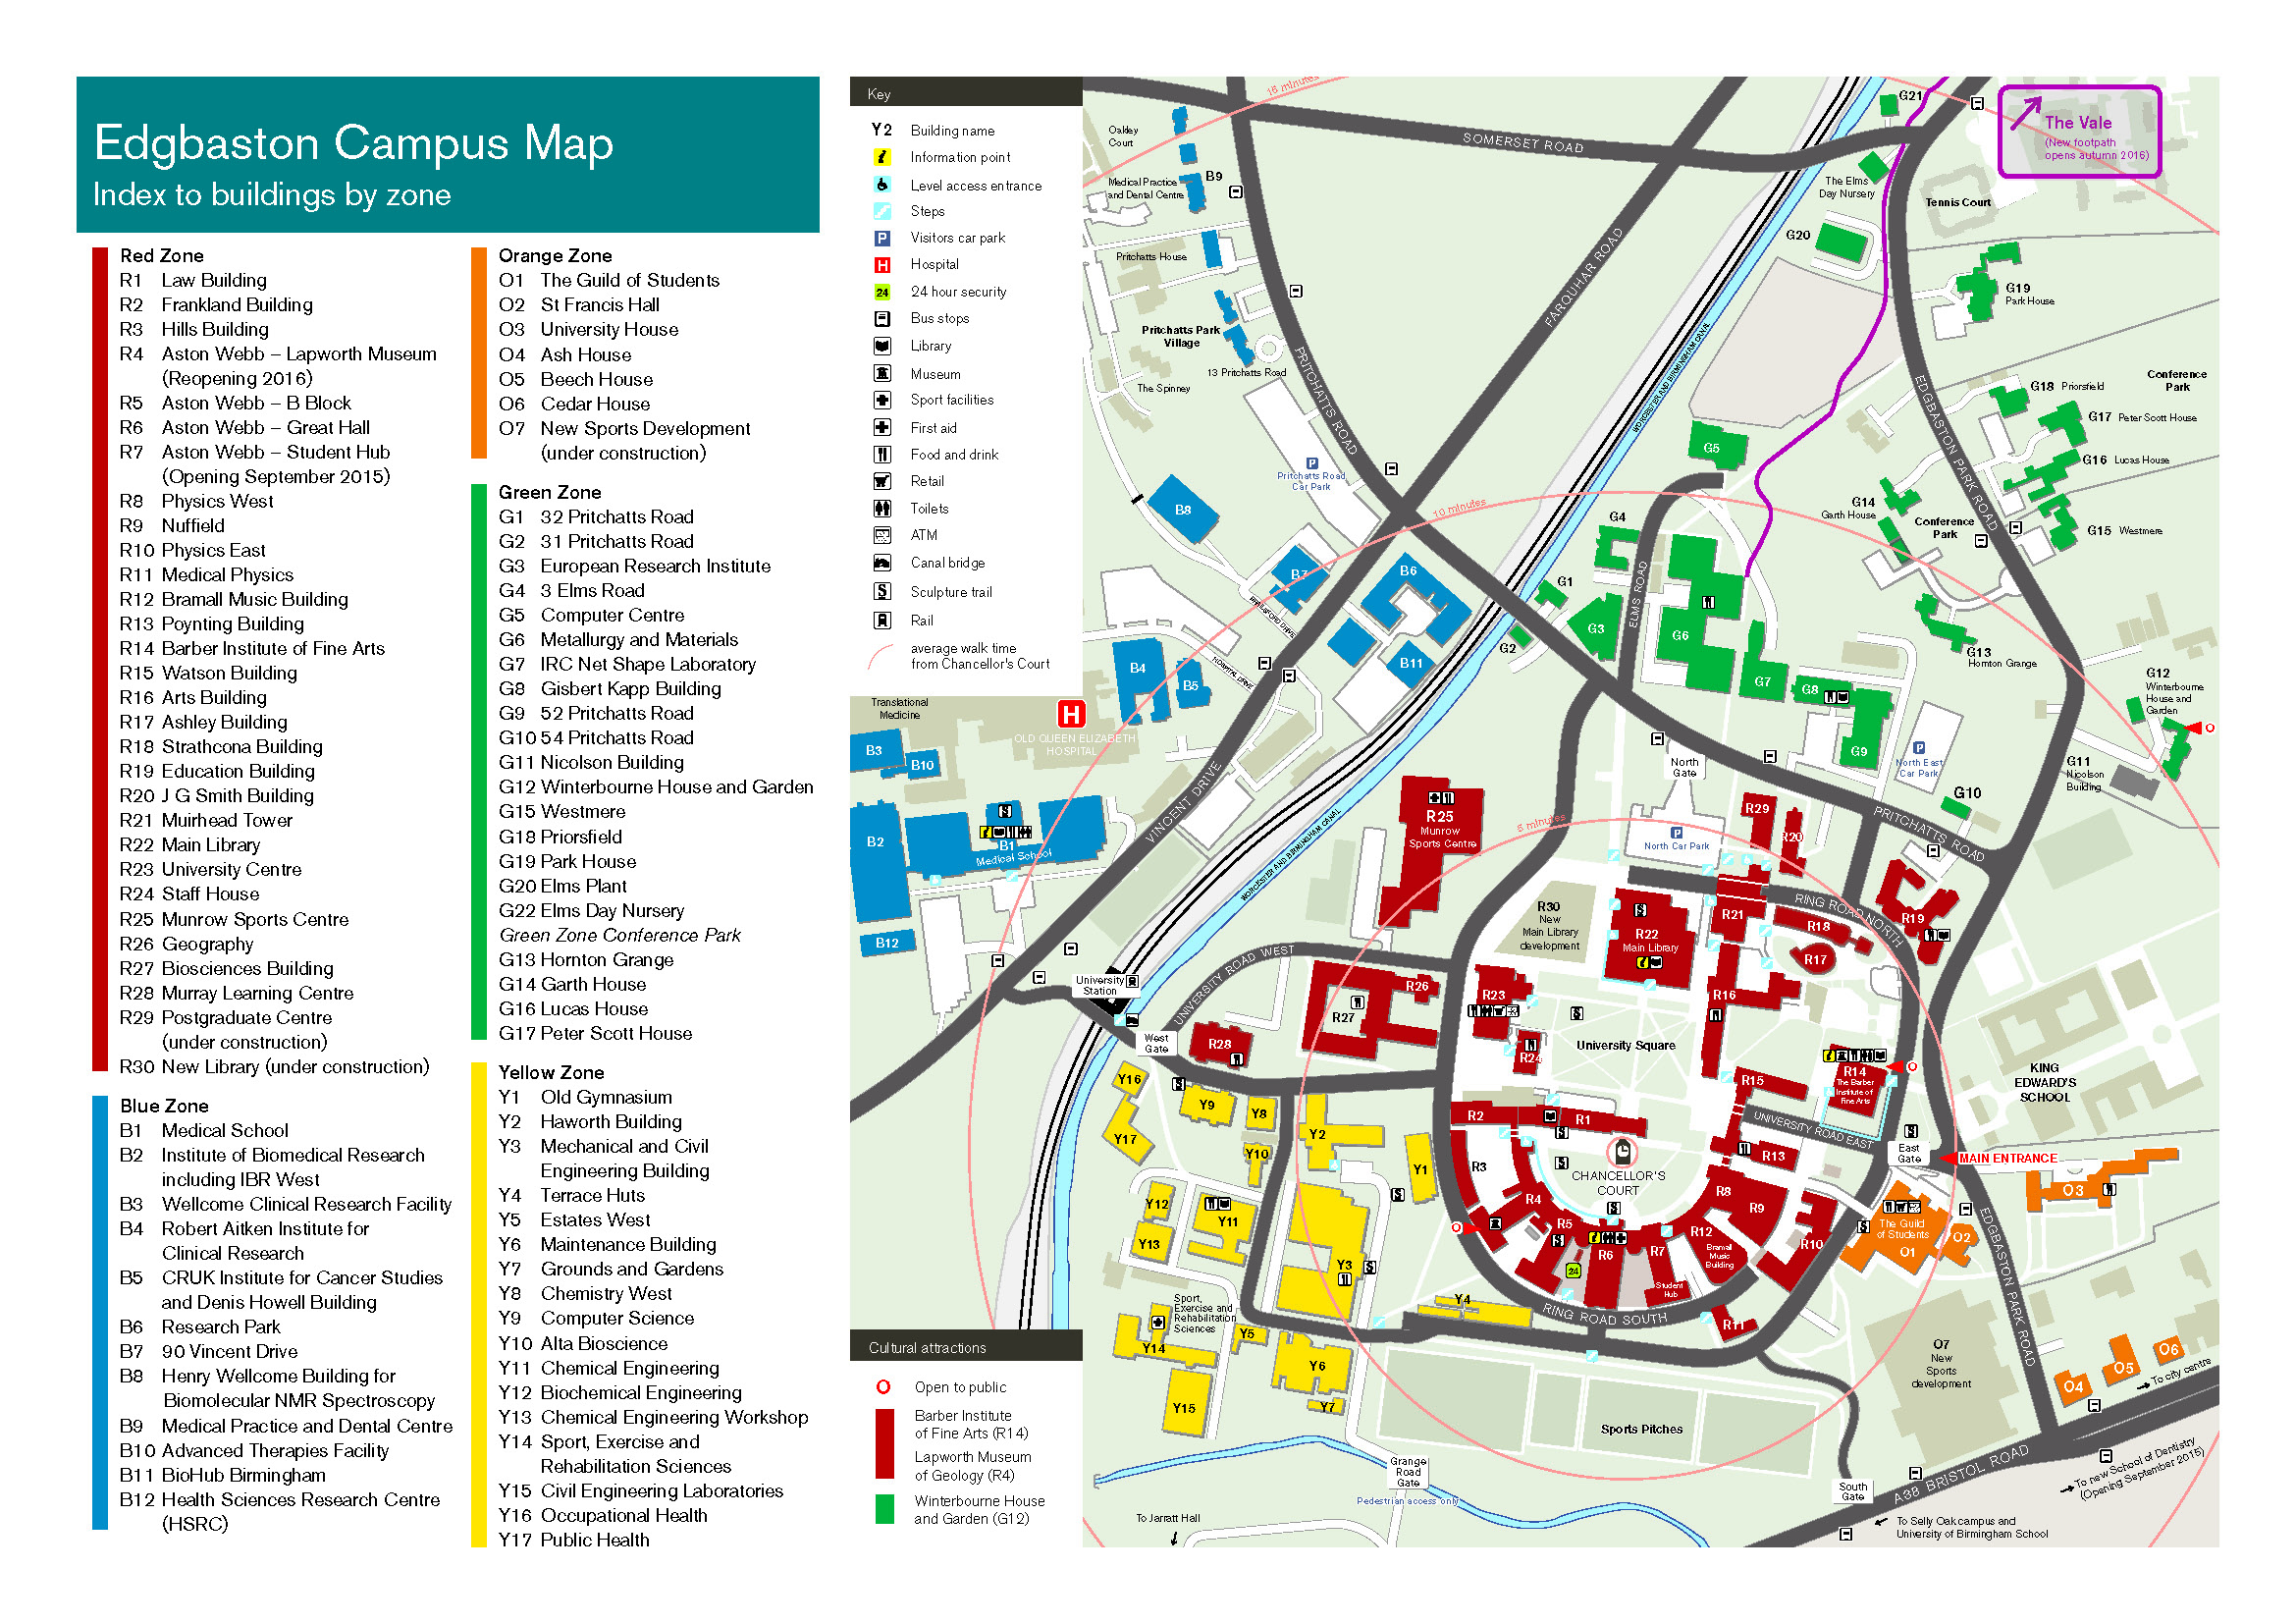 edgbaston-campus-map